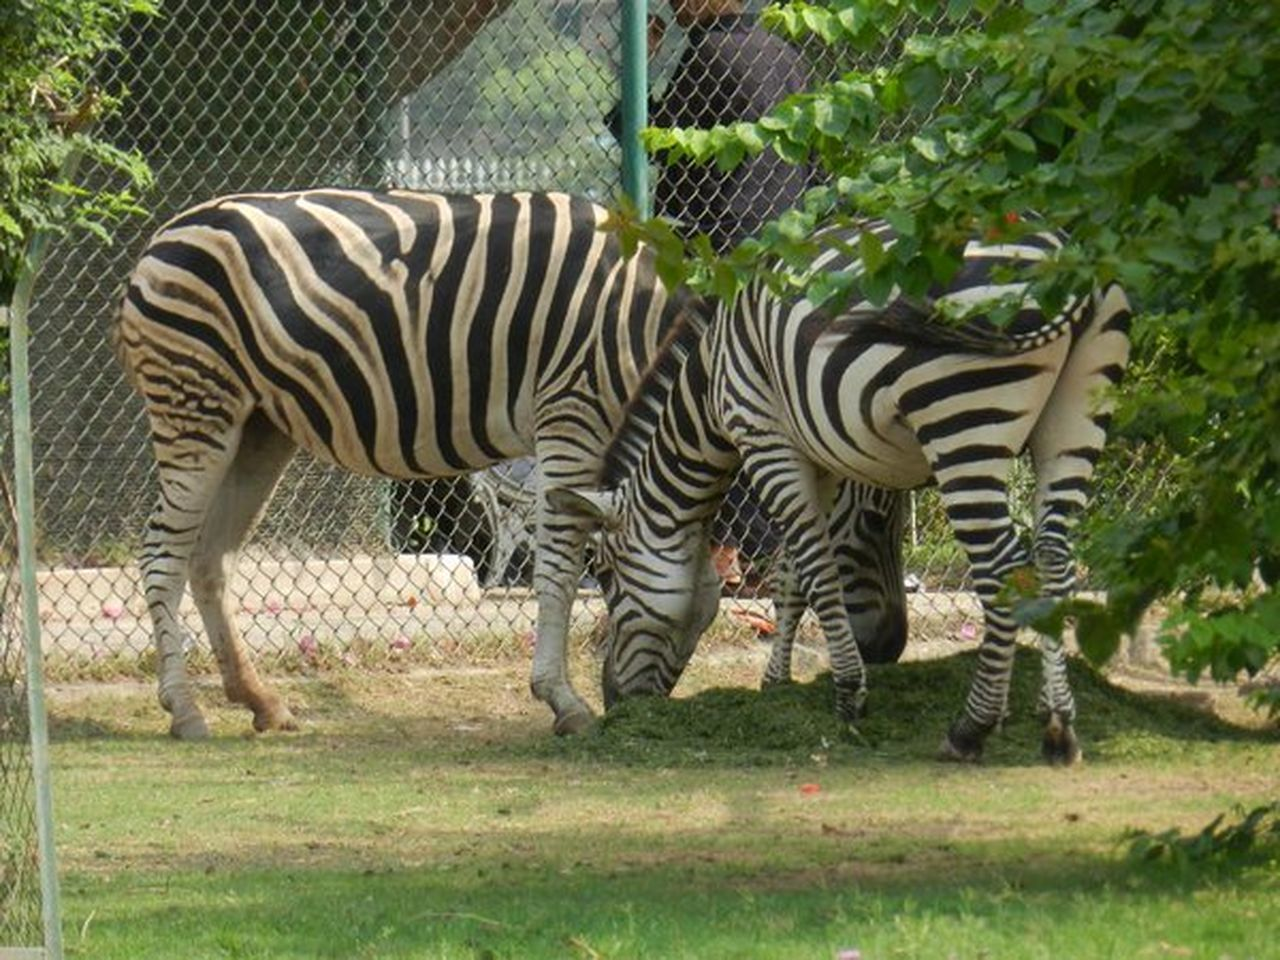 Tatara park in Pakistan Animal Themes Zebra Nature Grass Zoo Pakistani Beauty Tatarapark At Pakistan Pakistani Beauty Park Life Enjoymentoflife Nature Photography Asiapark